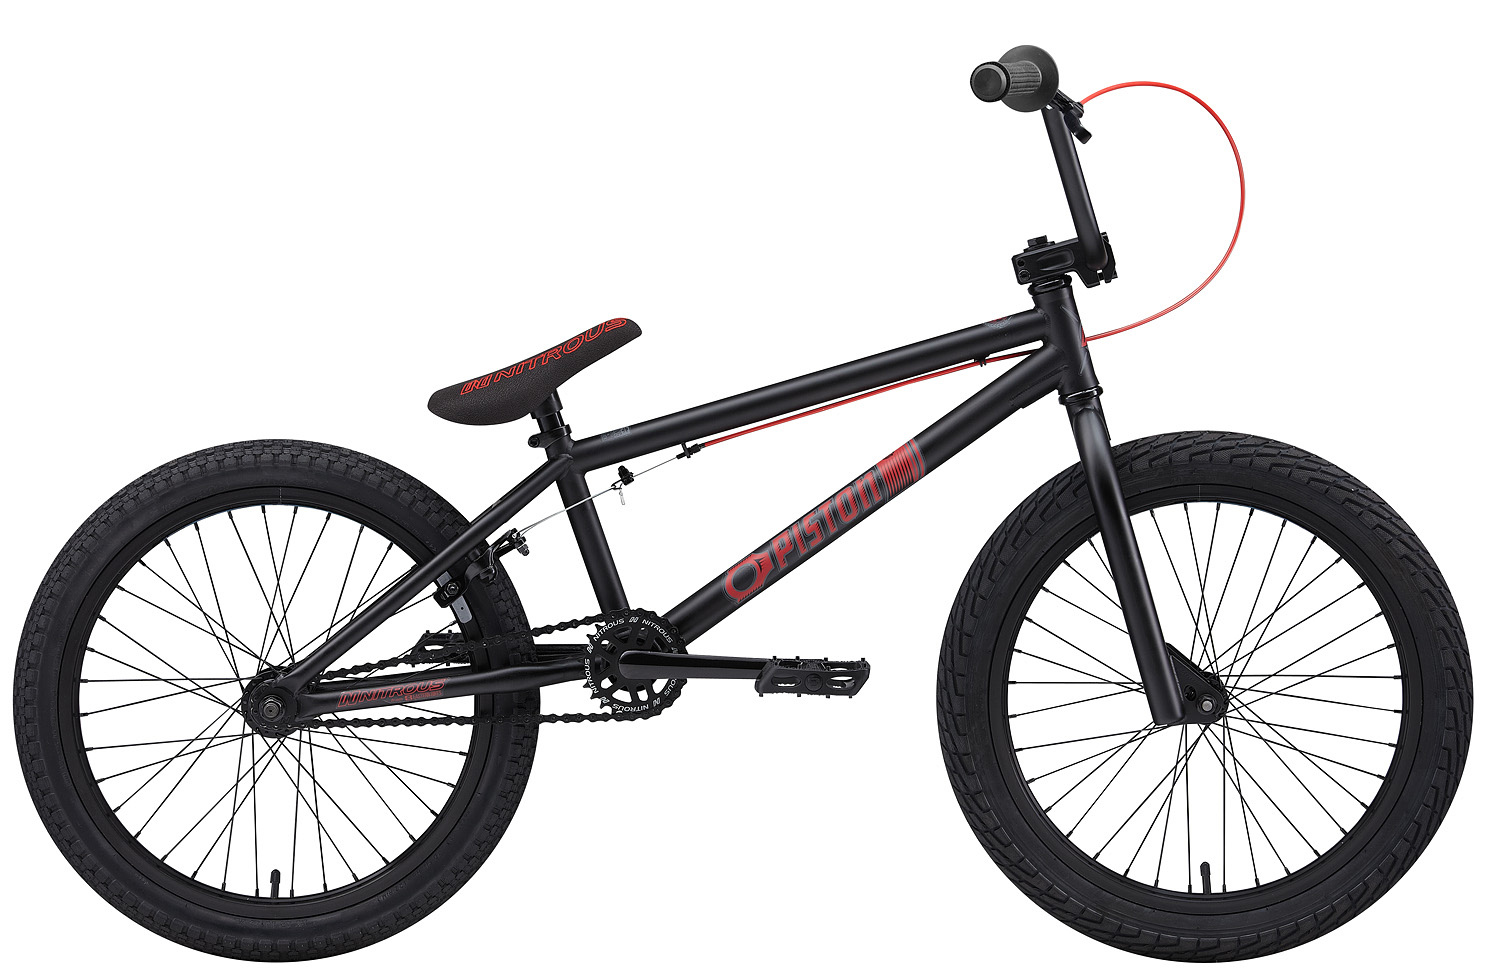 "BMX Key Features of the Nitrous Piston BMX Bike: WEIGHT // 25.8 lbs. COLORS // Black/Red, Hot Blue/Black TOP TUBE SIZE // 19.75"" GEARING // 25/9 Micro-drive FRAME // Piston Hi-Tensile Strength 1020 Steel Frame w/ lifetime upgrade policy** FORK // Piston Hi-Tensile Strength 1020 Steel BARS // 7.75""x 27.5"", 1? Upsweep, 12? Backsweep HEADSET // 1-1/8"" Aheadset BB // American Loose Ball Bearing PEDALS // Wellgo Plastic Pedals GRIPS // Eastern Wiz Signature Grip (pg. 27) STEM // Forged Alloy Front Load SPROCKET // 25T Steel w/ Nitrous Graphic CRANKS // Forged & Heat-Treated 1-Piece Cro-Mo Cranks (light & strong) SEAT // Nitrous Logo 1-Piece Seat/Alloy Post Combo TIRES // LHR Multi-Surface , 20"" x 2.20"" FRONT HUB // 36H 3/8"" Loose Ball Bearing REAR HUB // KT/Quando semi-sealed 36H cassette hub. 1-piece 9-tooth chromoly driver, hollow 14mm chromoly axle RIMS // Alloy 36 Hole REAR BRAKES // Forged Alloy U-Brake / Straight Cable / Forged Alloy lever, Designed for U-Brakes FREEWHEEL // 9T 1-Piece Chromoly Driver CHAIN // KMC Z510 SEAT CLAMP // Nitrous Locker Forged Alloy Clamp - $259.95"